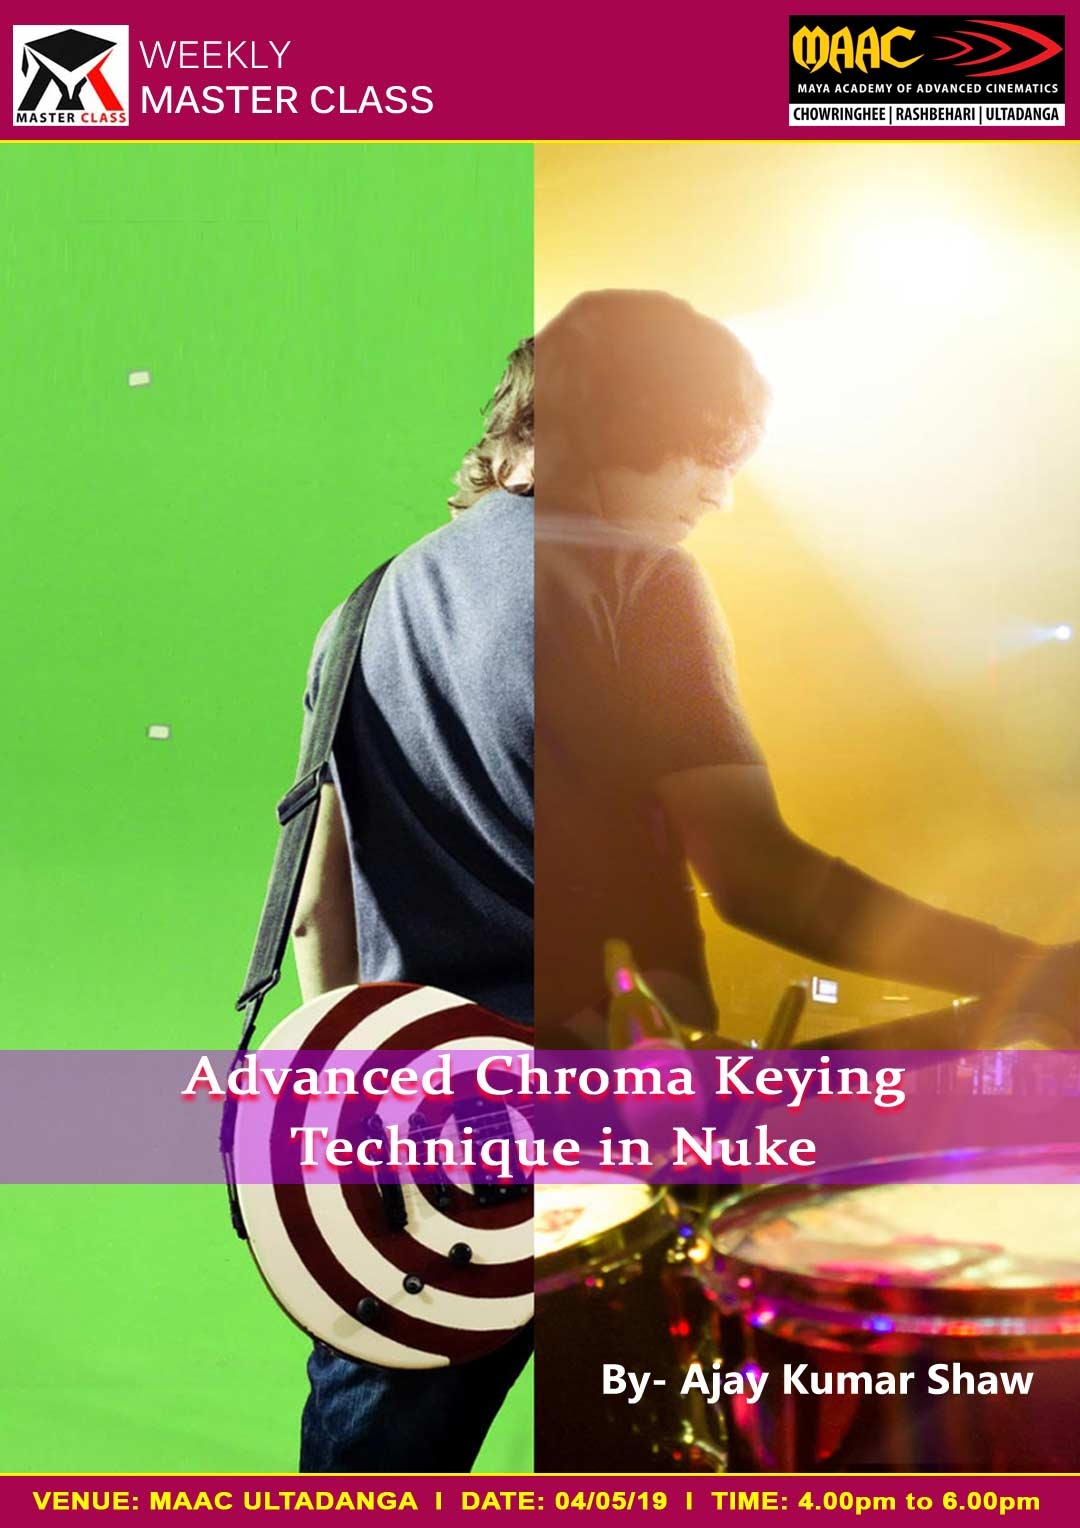 Weekly Master Class on Advanced Chroma Keying Technique in Nuke